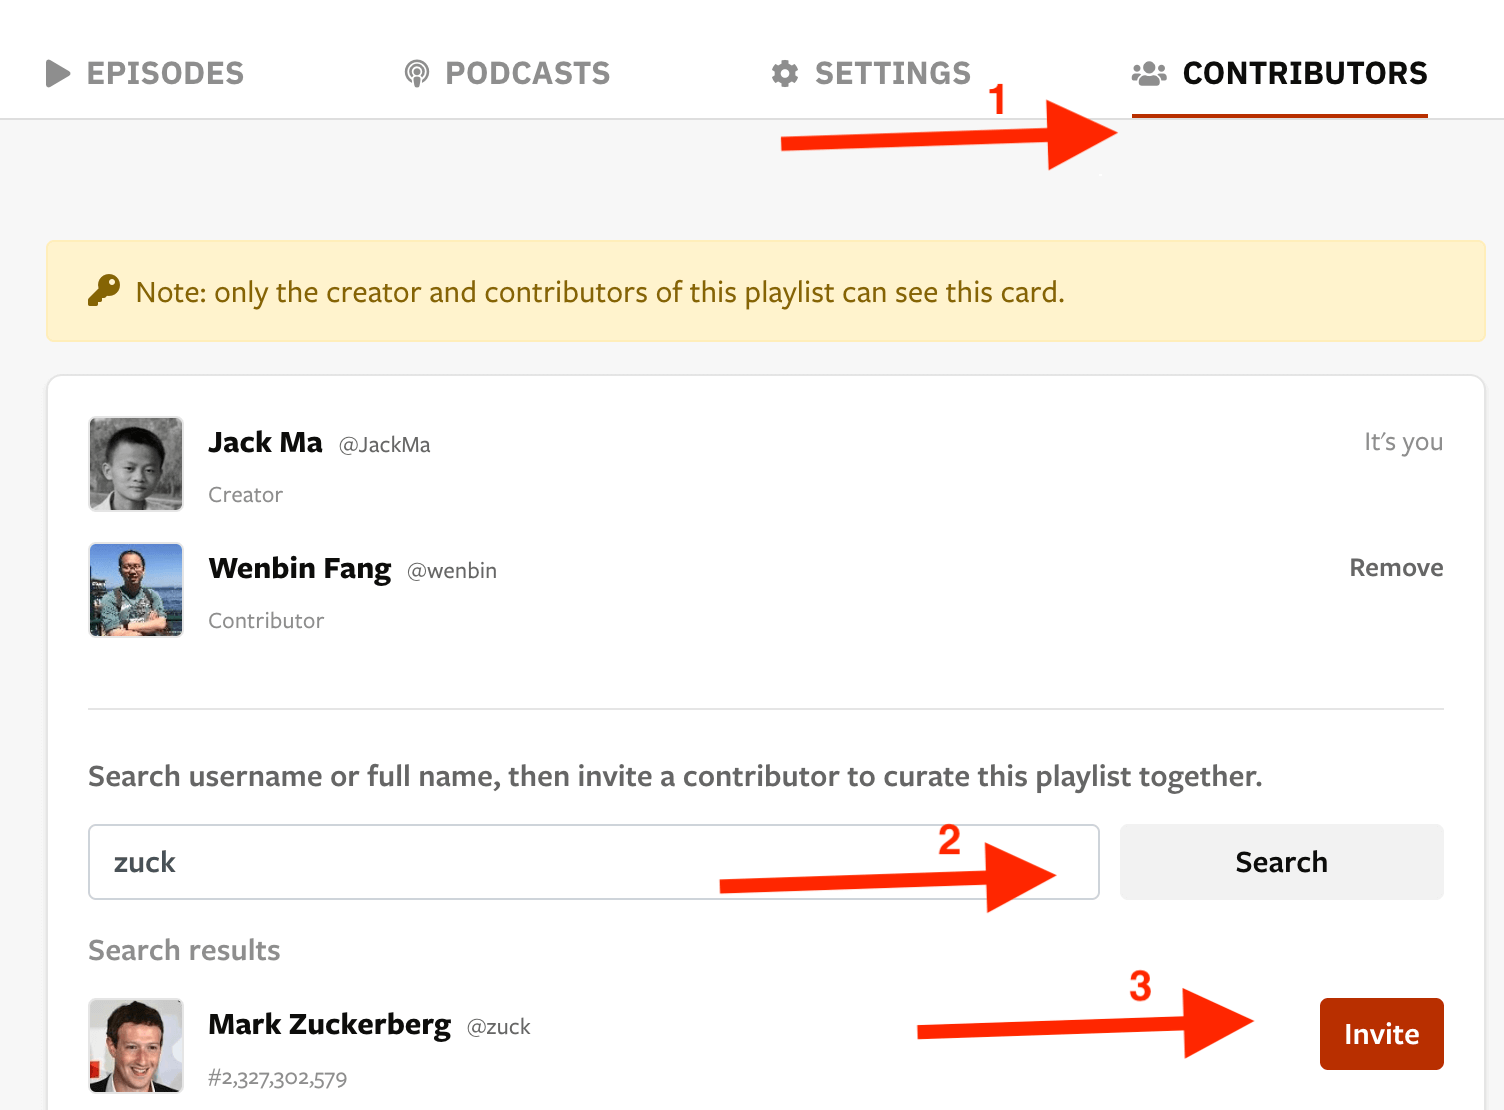 How to add a contributor